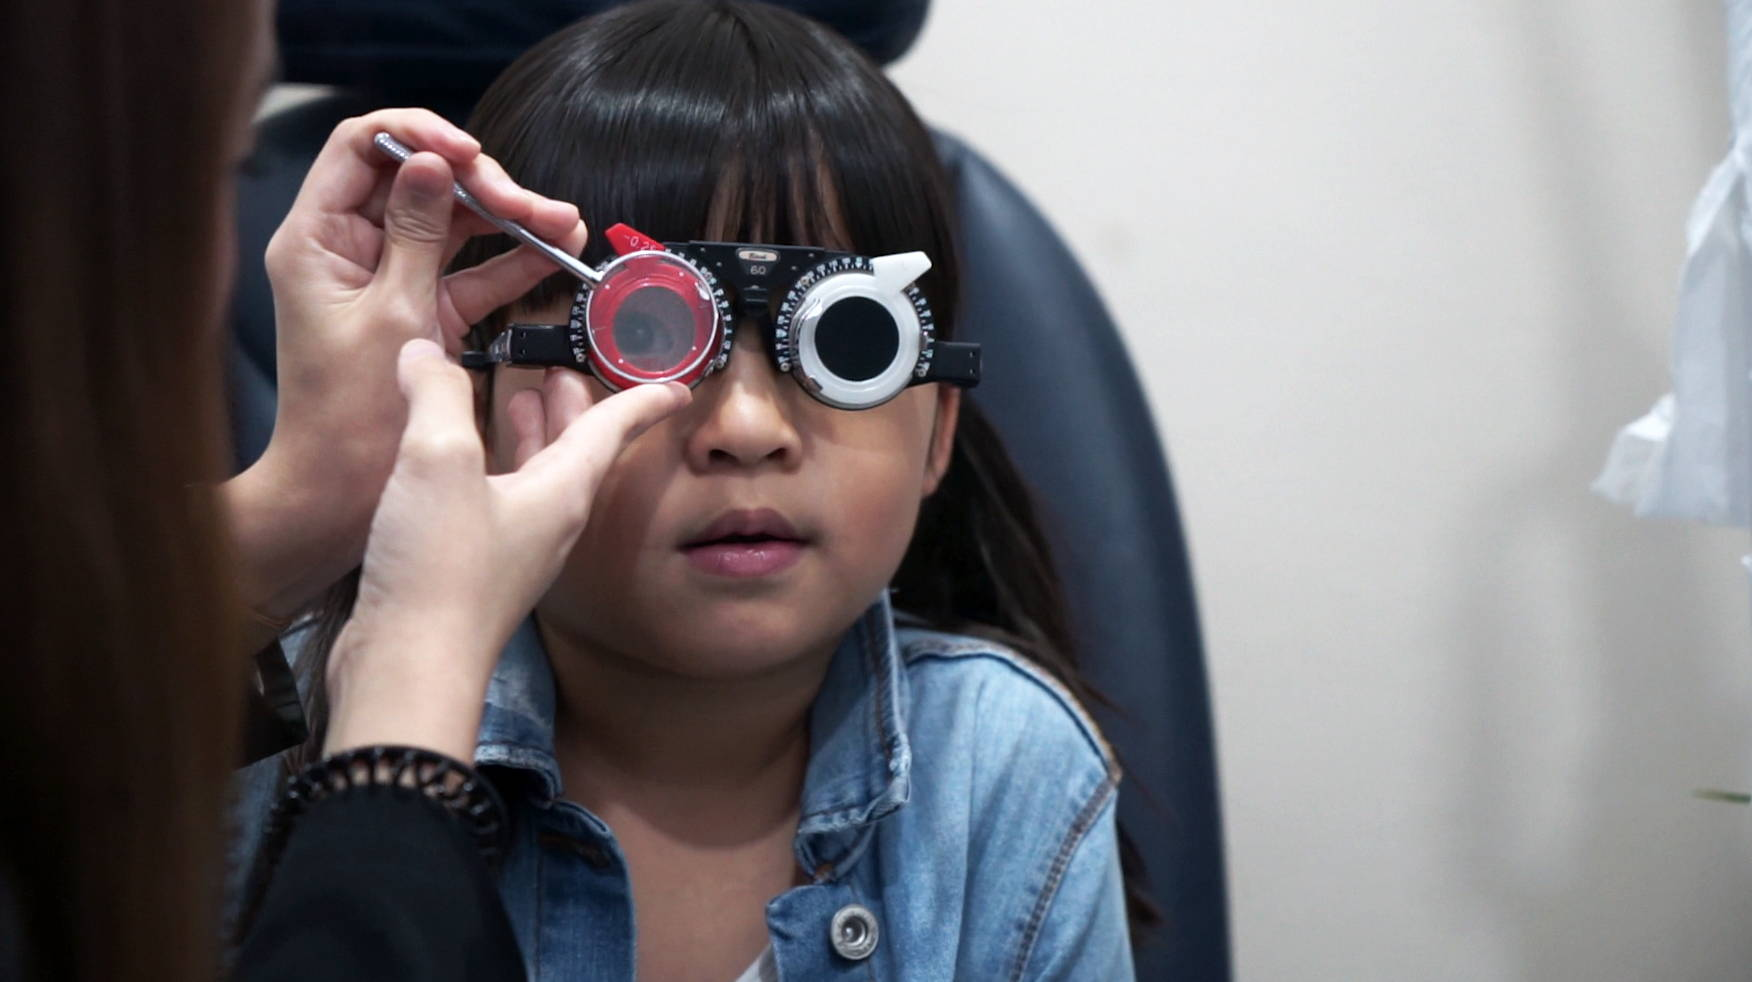 When Should I Have My Child's Eyes Checked